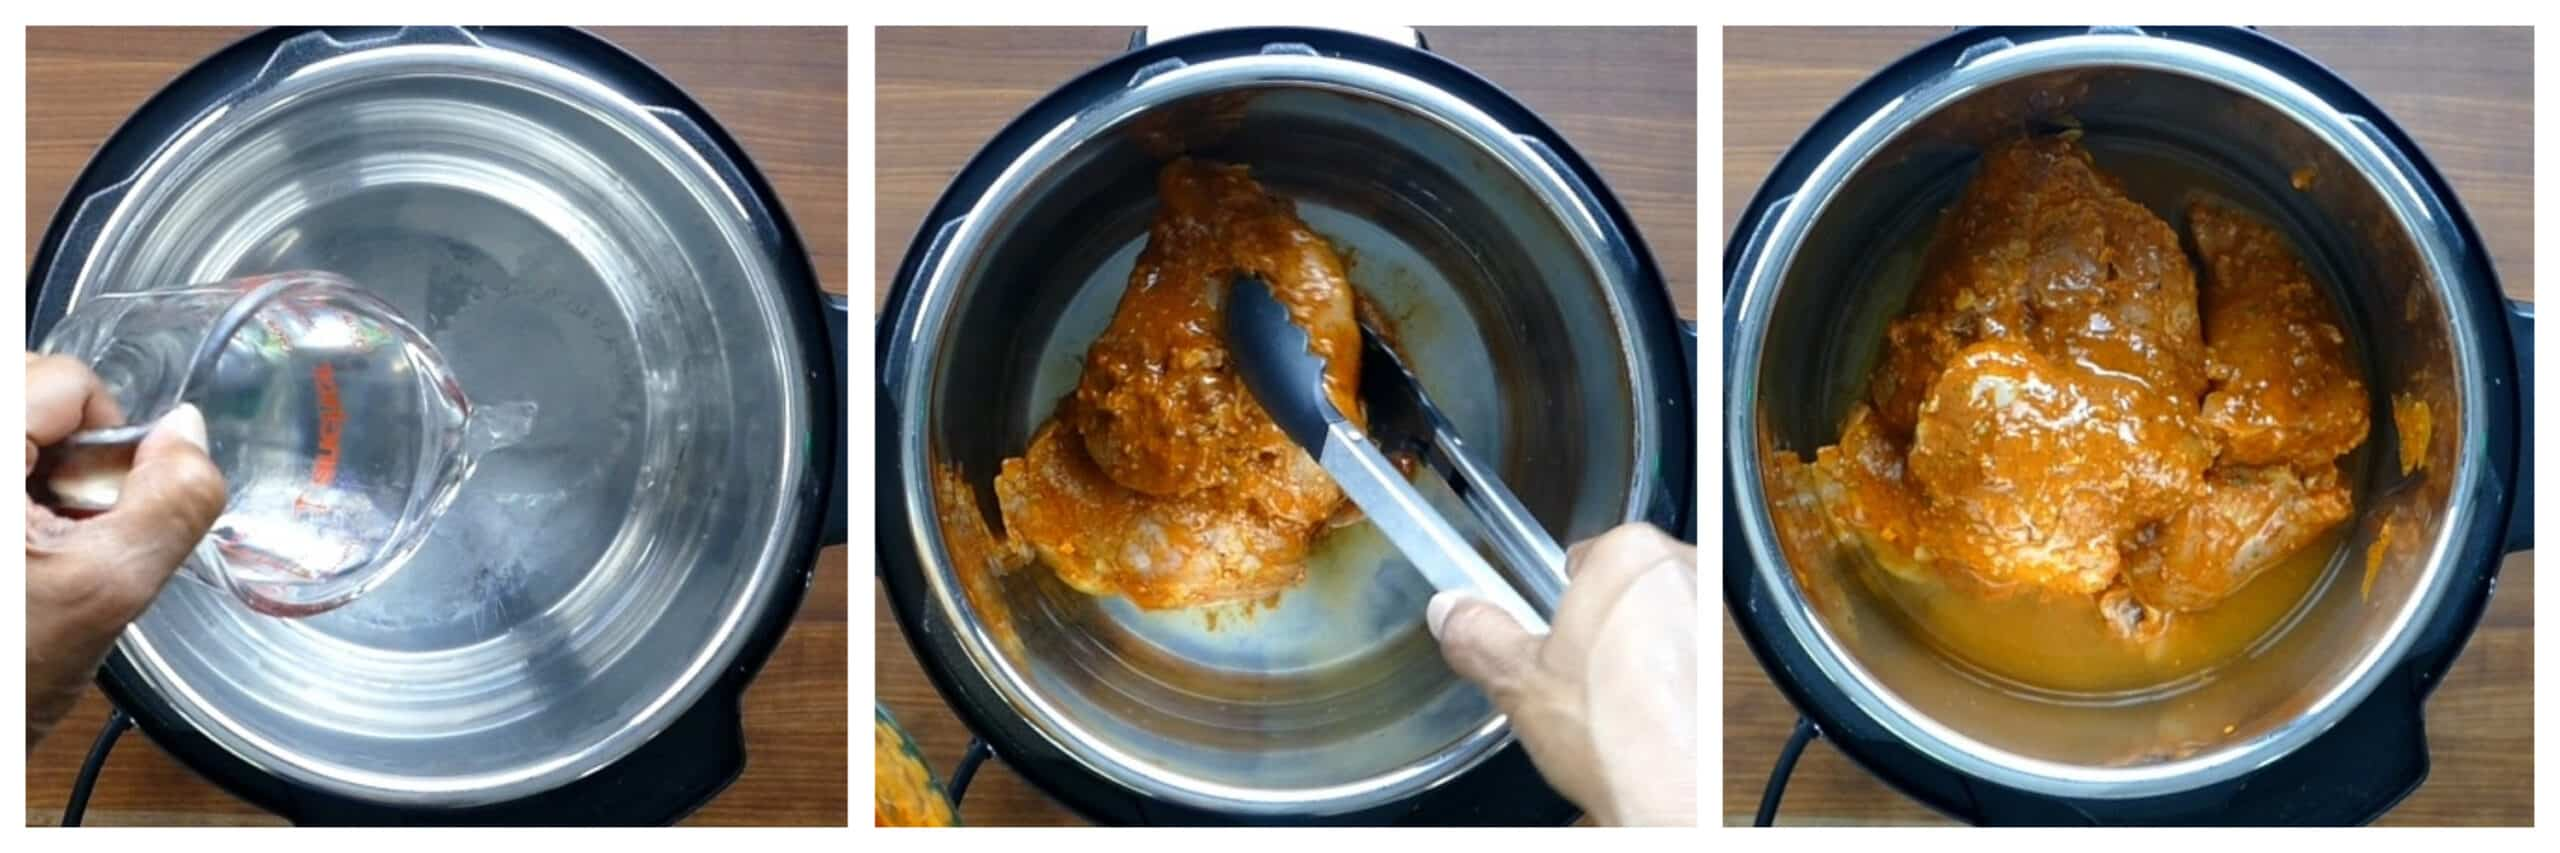 Instant Pot peri peri chicken instructions collage - water in inner pot, chicken being put in, chicken and water in inner pot